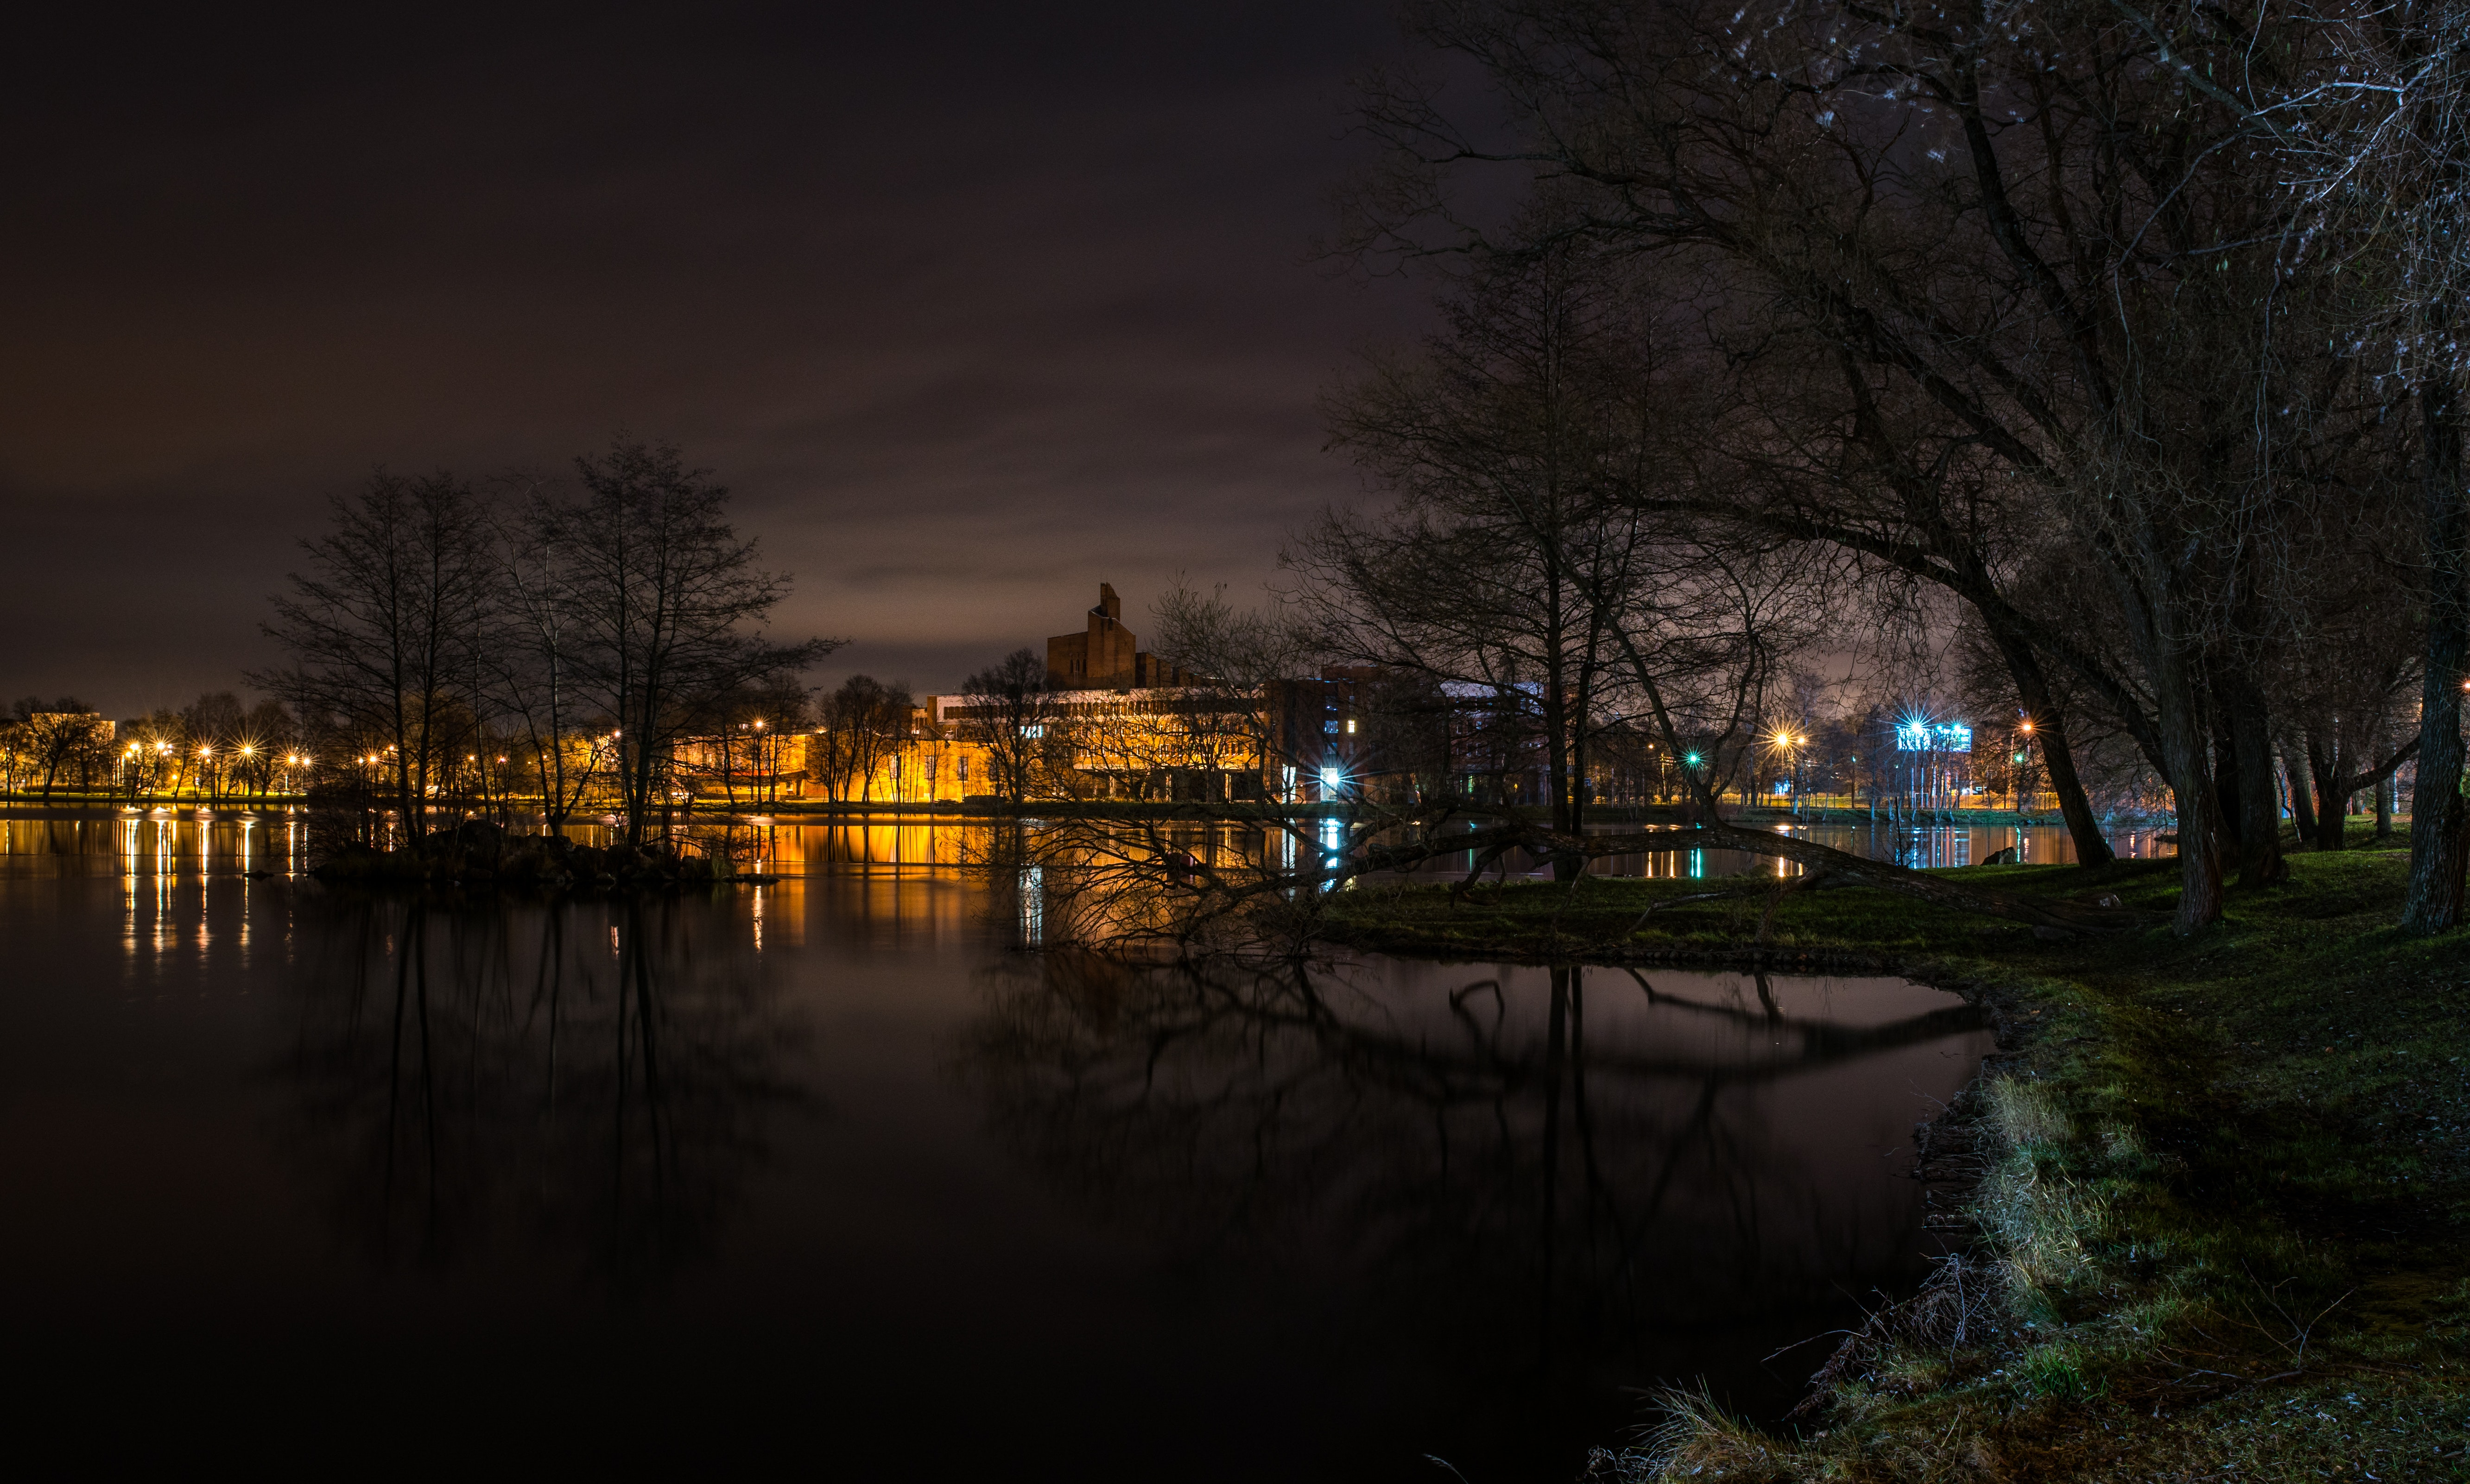 Still Body of Water Next to Lighted Beige Buildings during Nighttime, Architecture, Lights, Water, Trees, HQ Photo